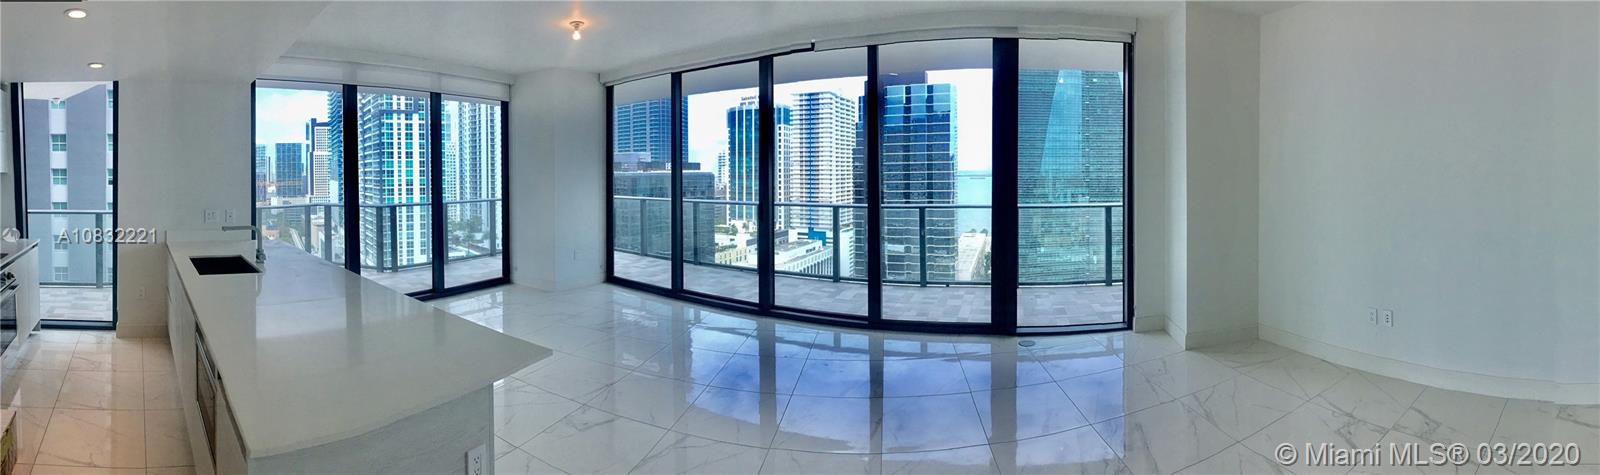 1300 S Miami Ave #2101 For Sale A10832221, FL